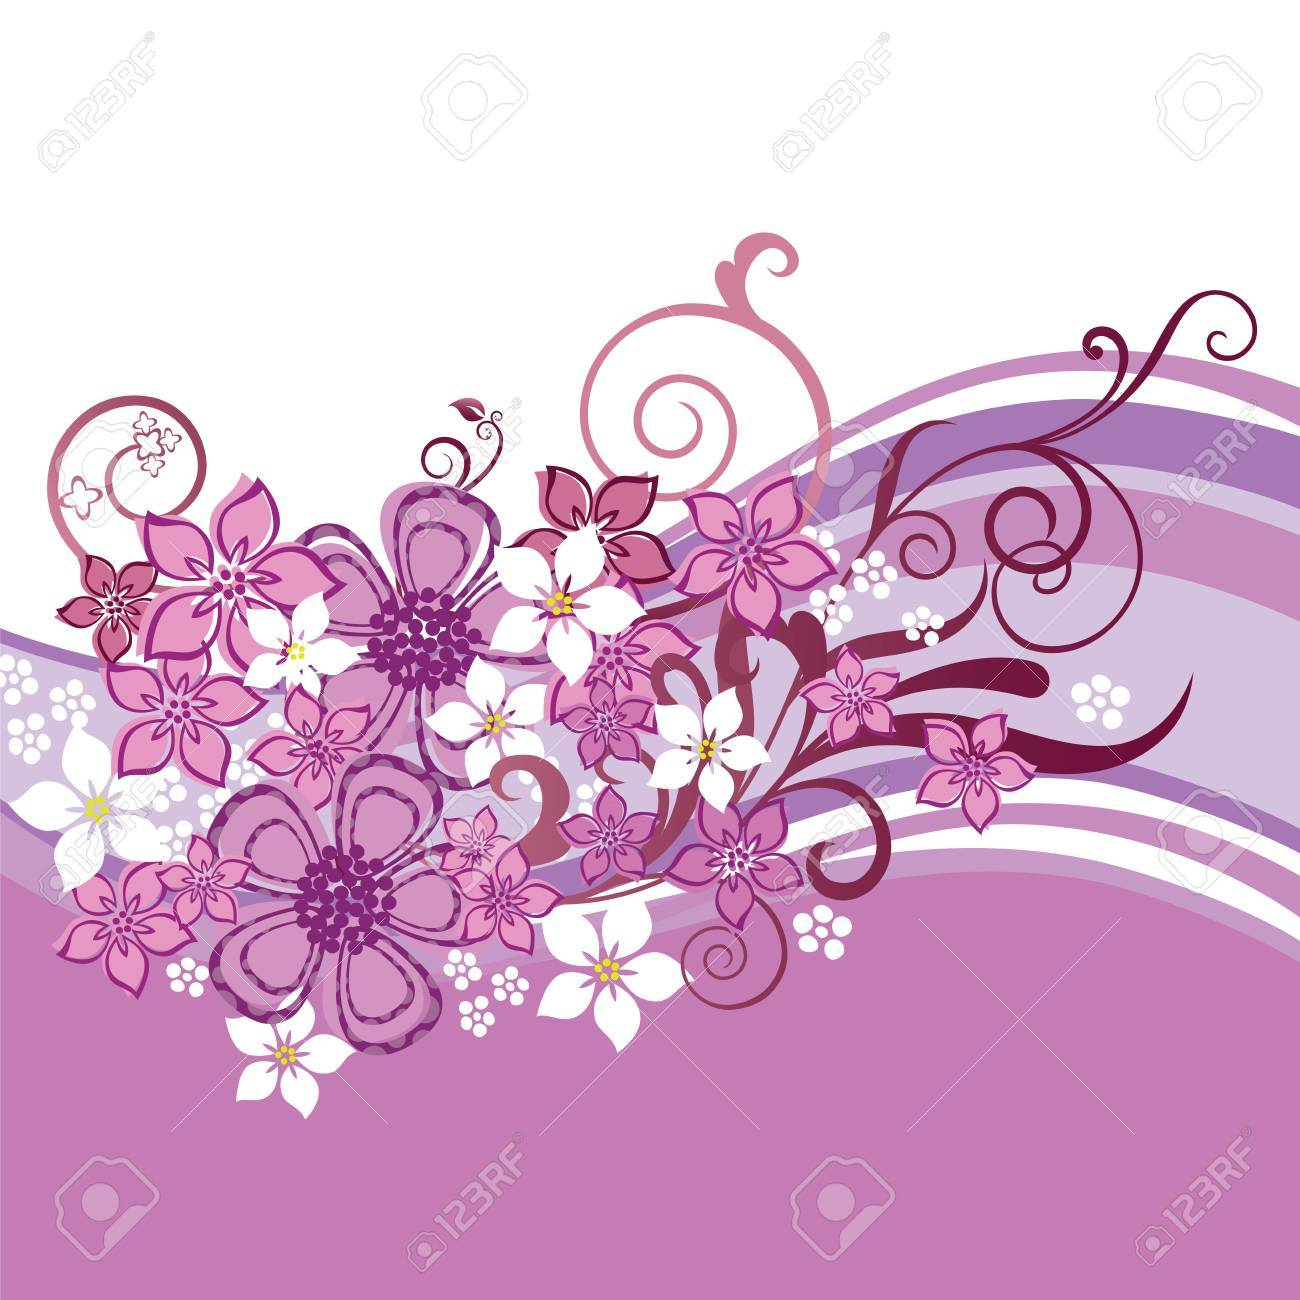 Pink and white flowers and swirls border isolated on white background. This image is a vector illustration. Stock Vector - 18818809